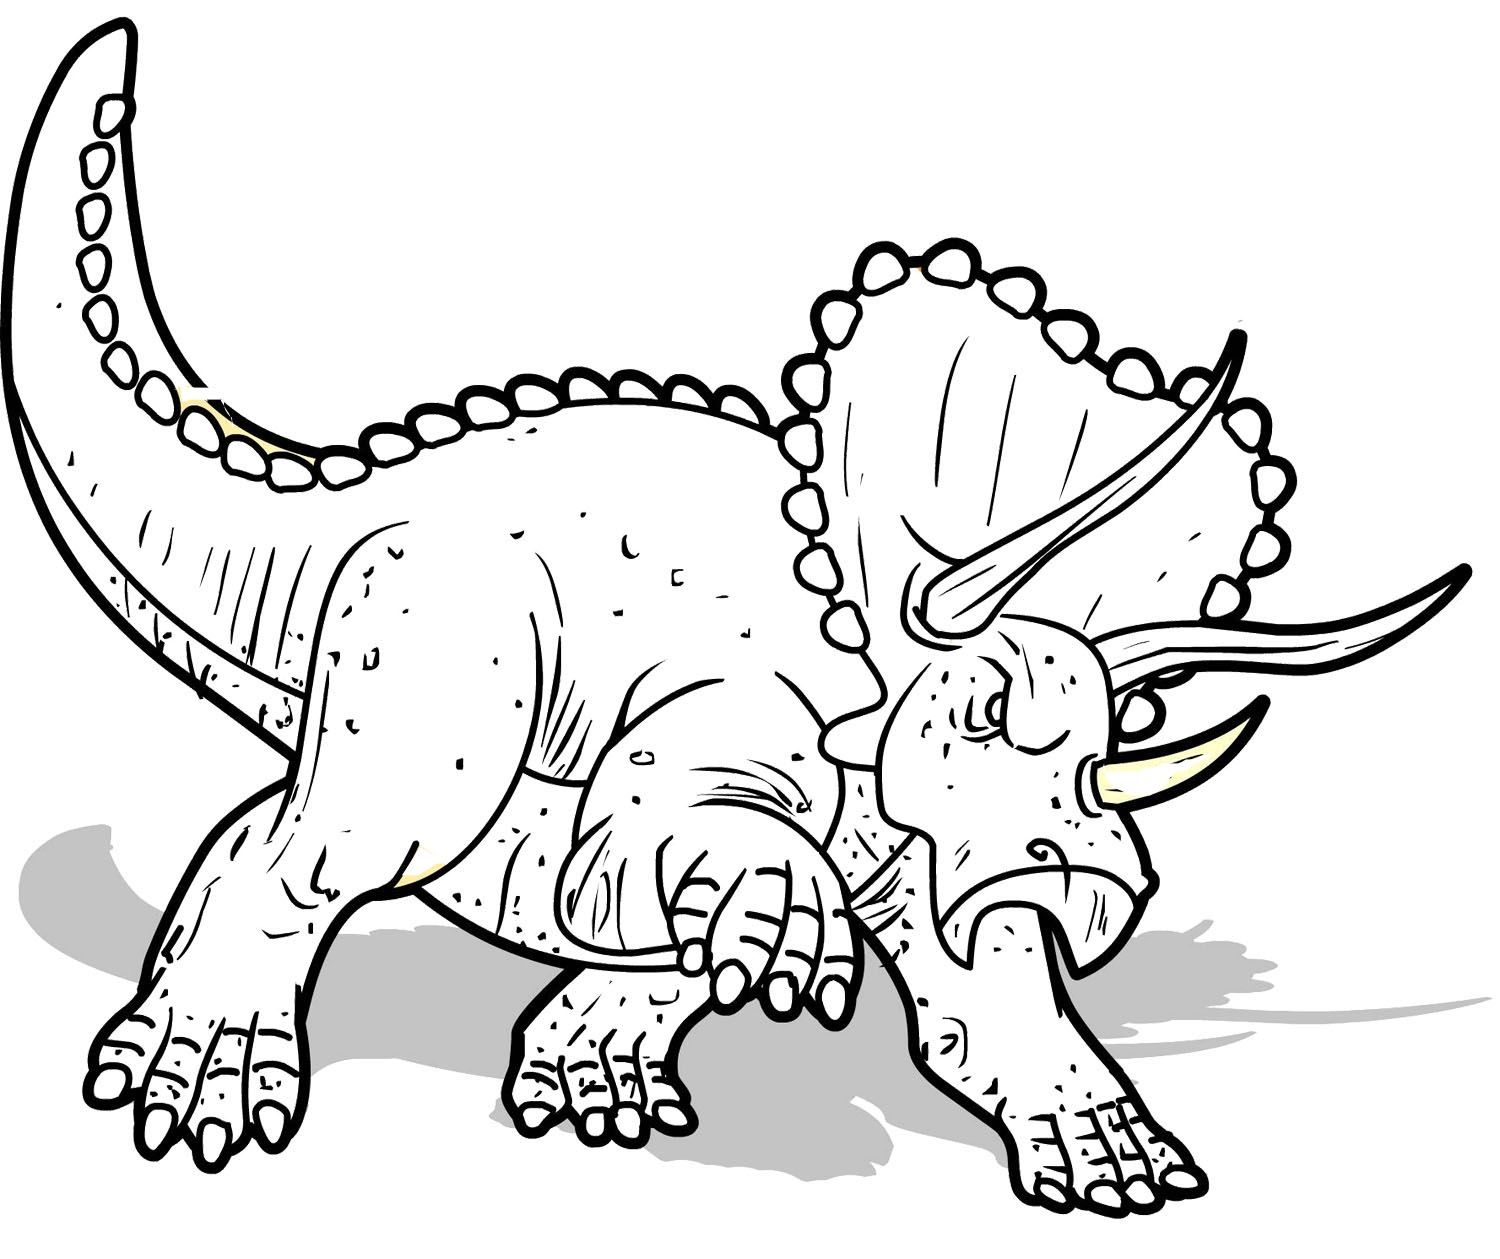 triceratopsaurus coloring page dinosaur pinterest activities